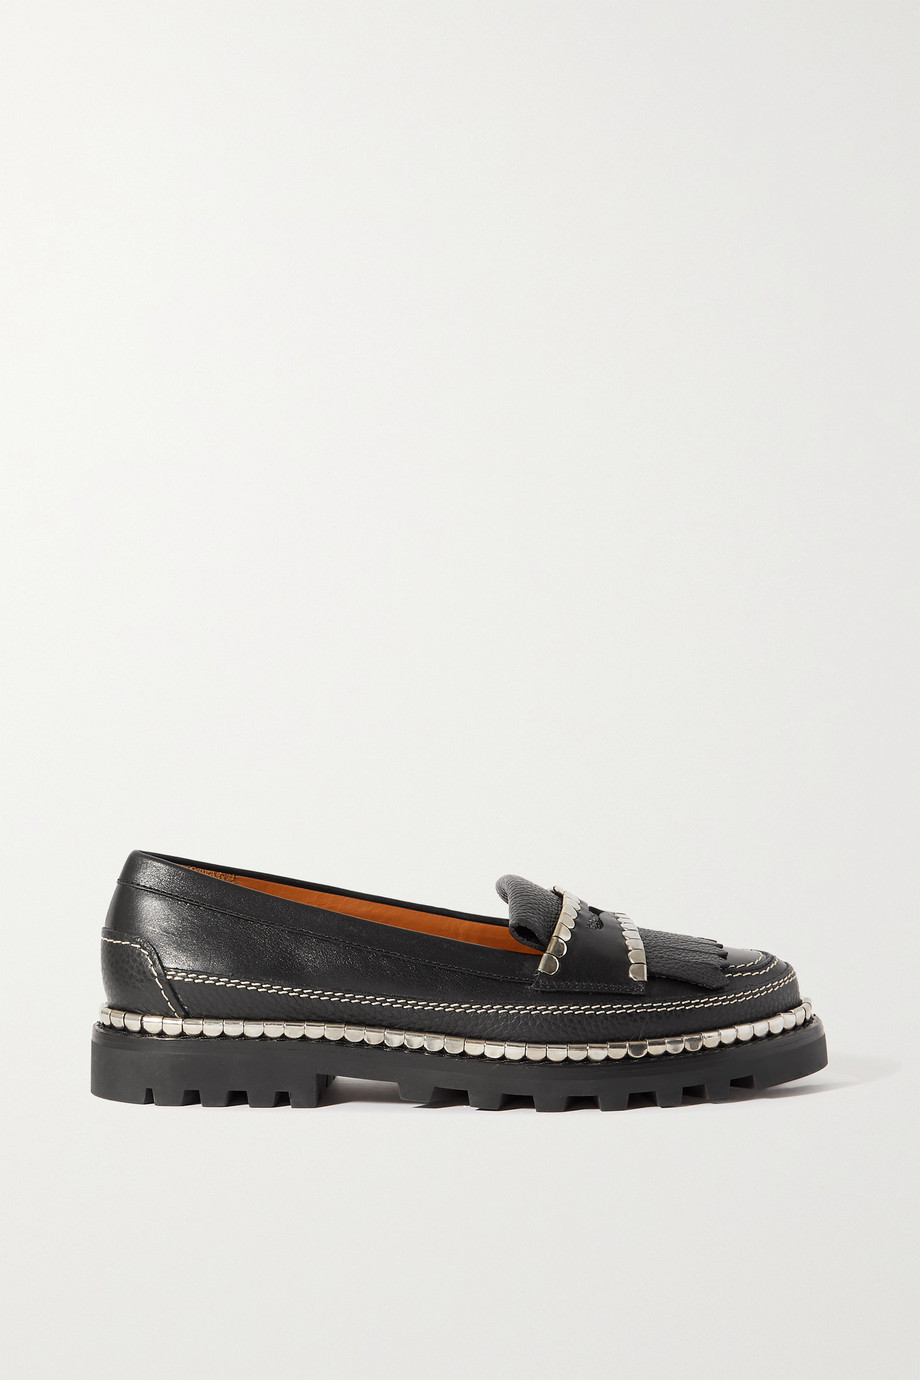 Chloé Idol embellished leather loafers